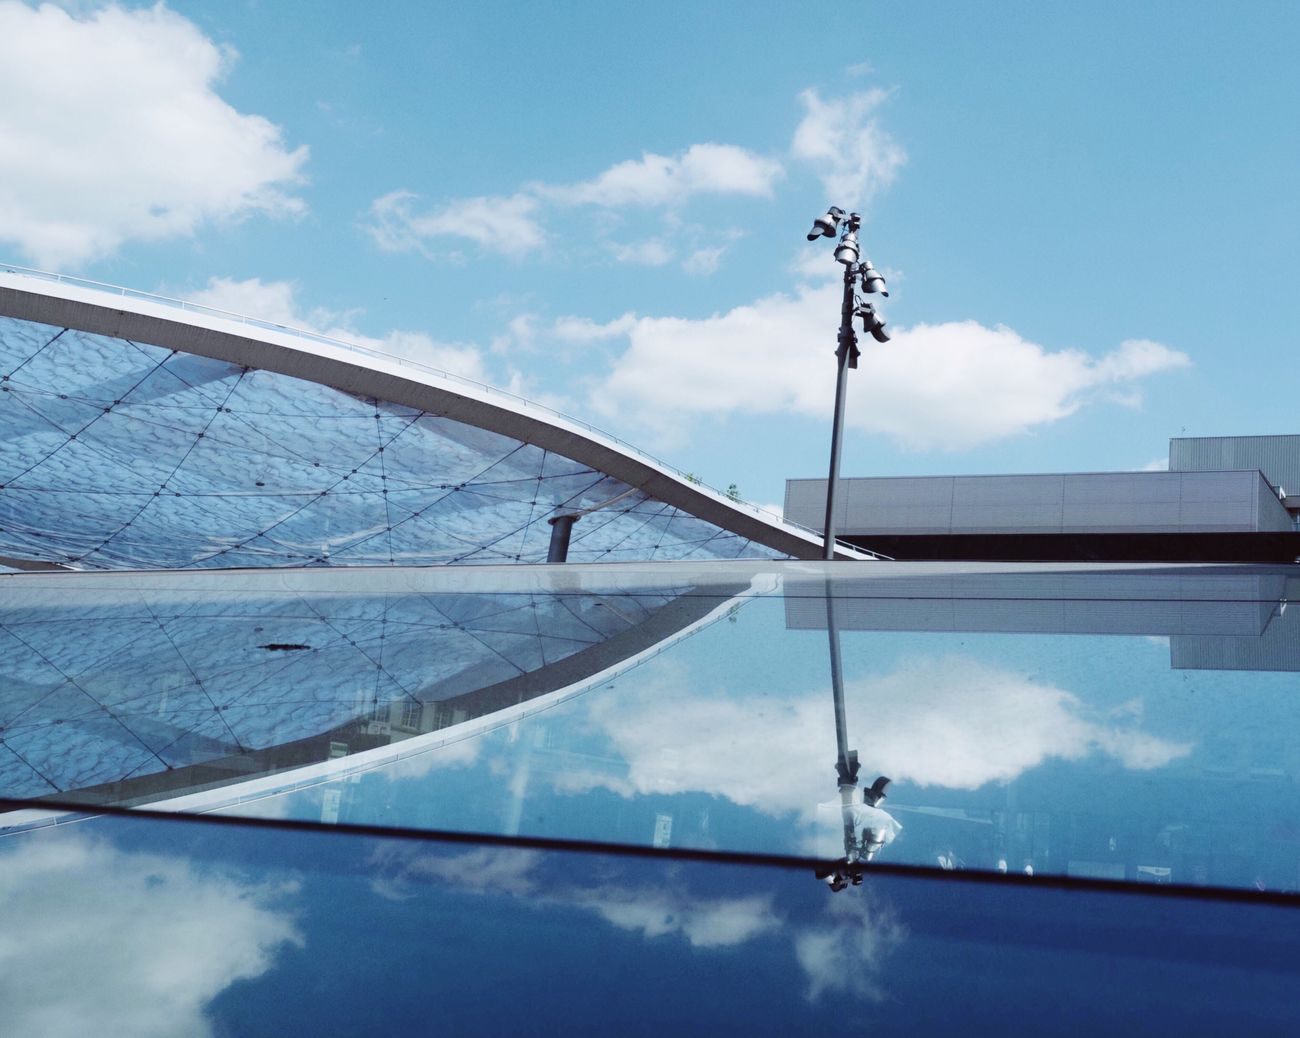 Sky Cloud - Sky Day Reflection Outdoors Low Angle View Blue No People Architecture Built Structure Architecture Blue Sky The Architect - 2017 EyeEm Awards